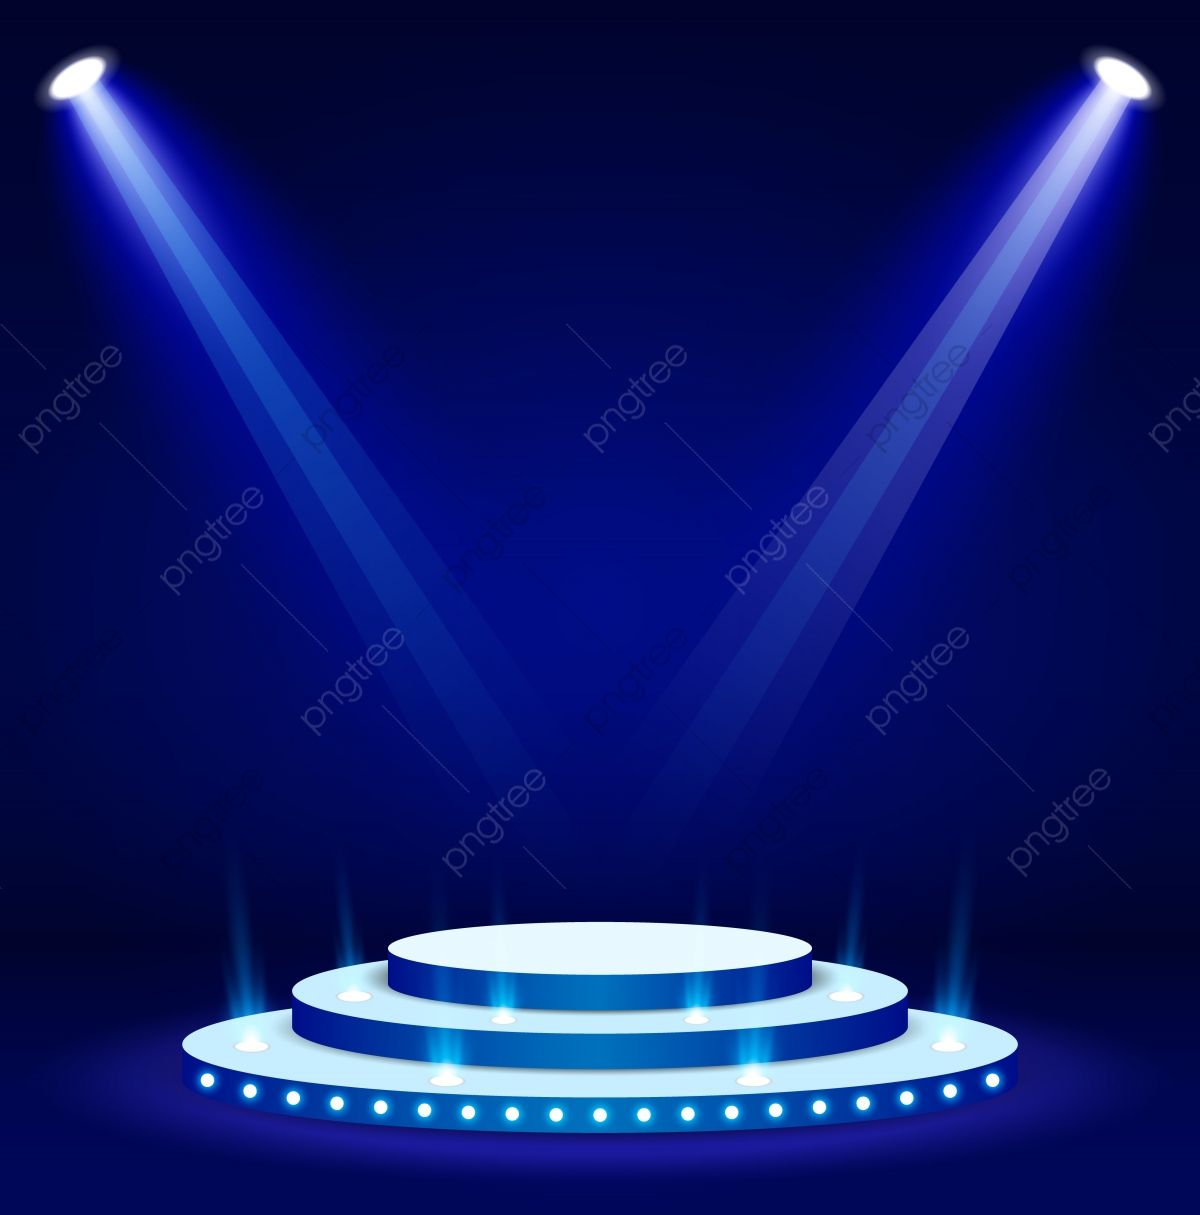 Blue Stage Podium Spotlight Illuminated Scene Vector Illustration Spotlight Clipart Visual Effect Lighting Beam Png And Vector With Transparent Background Fo Green Screen Video Backgrounds Green Background Video Visual Effects